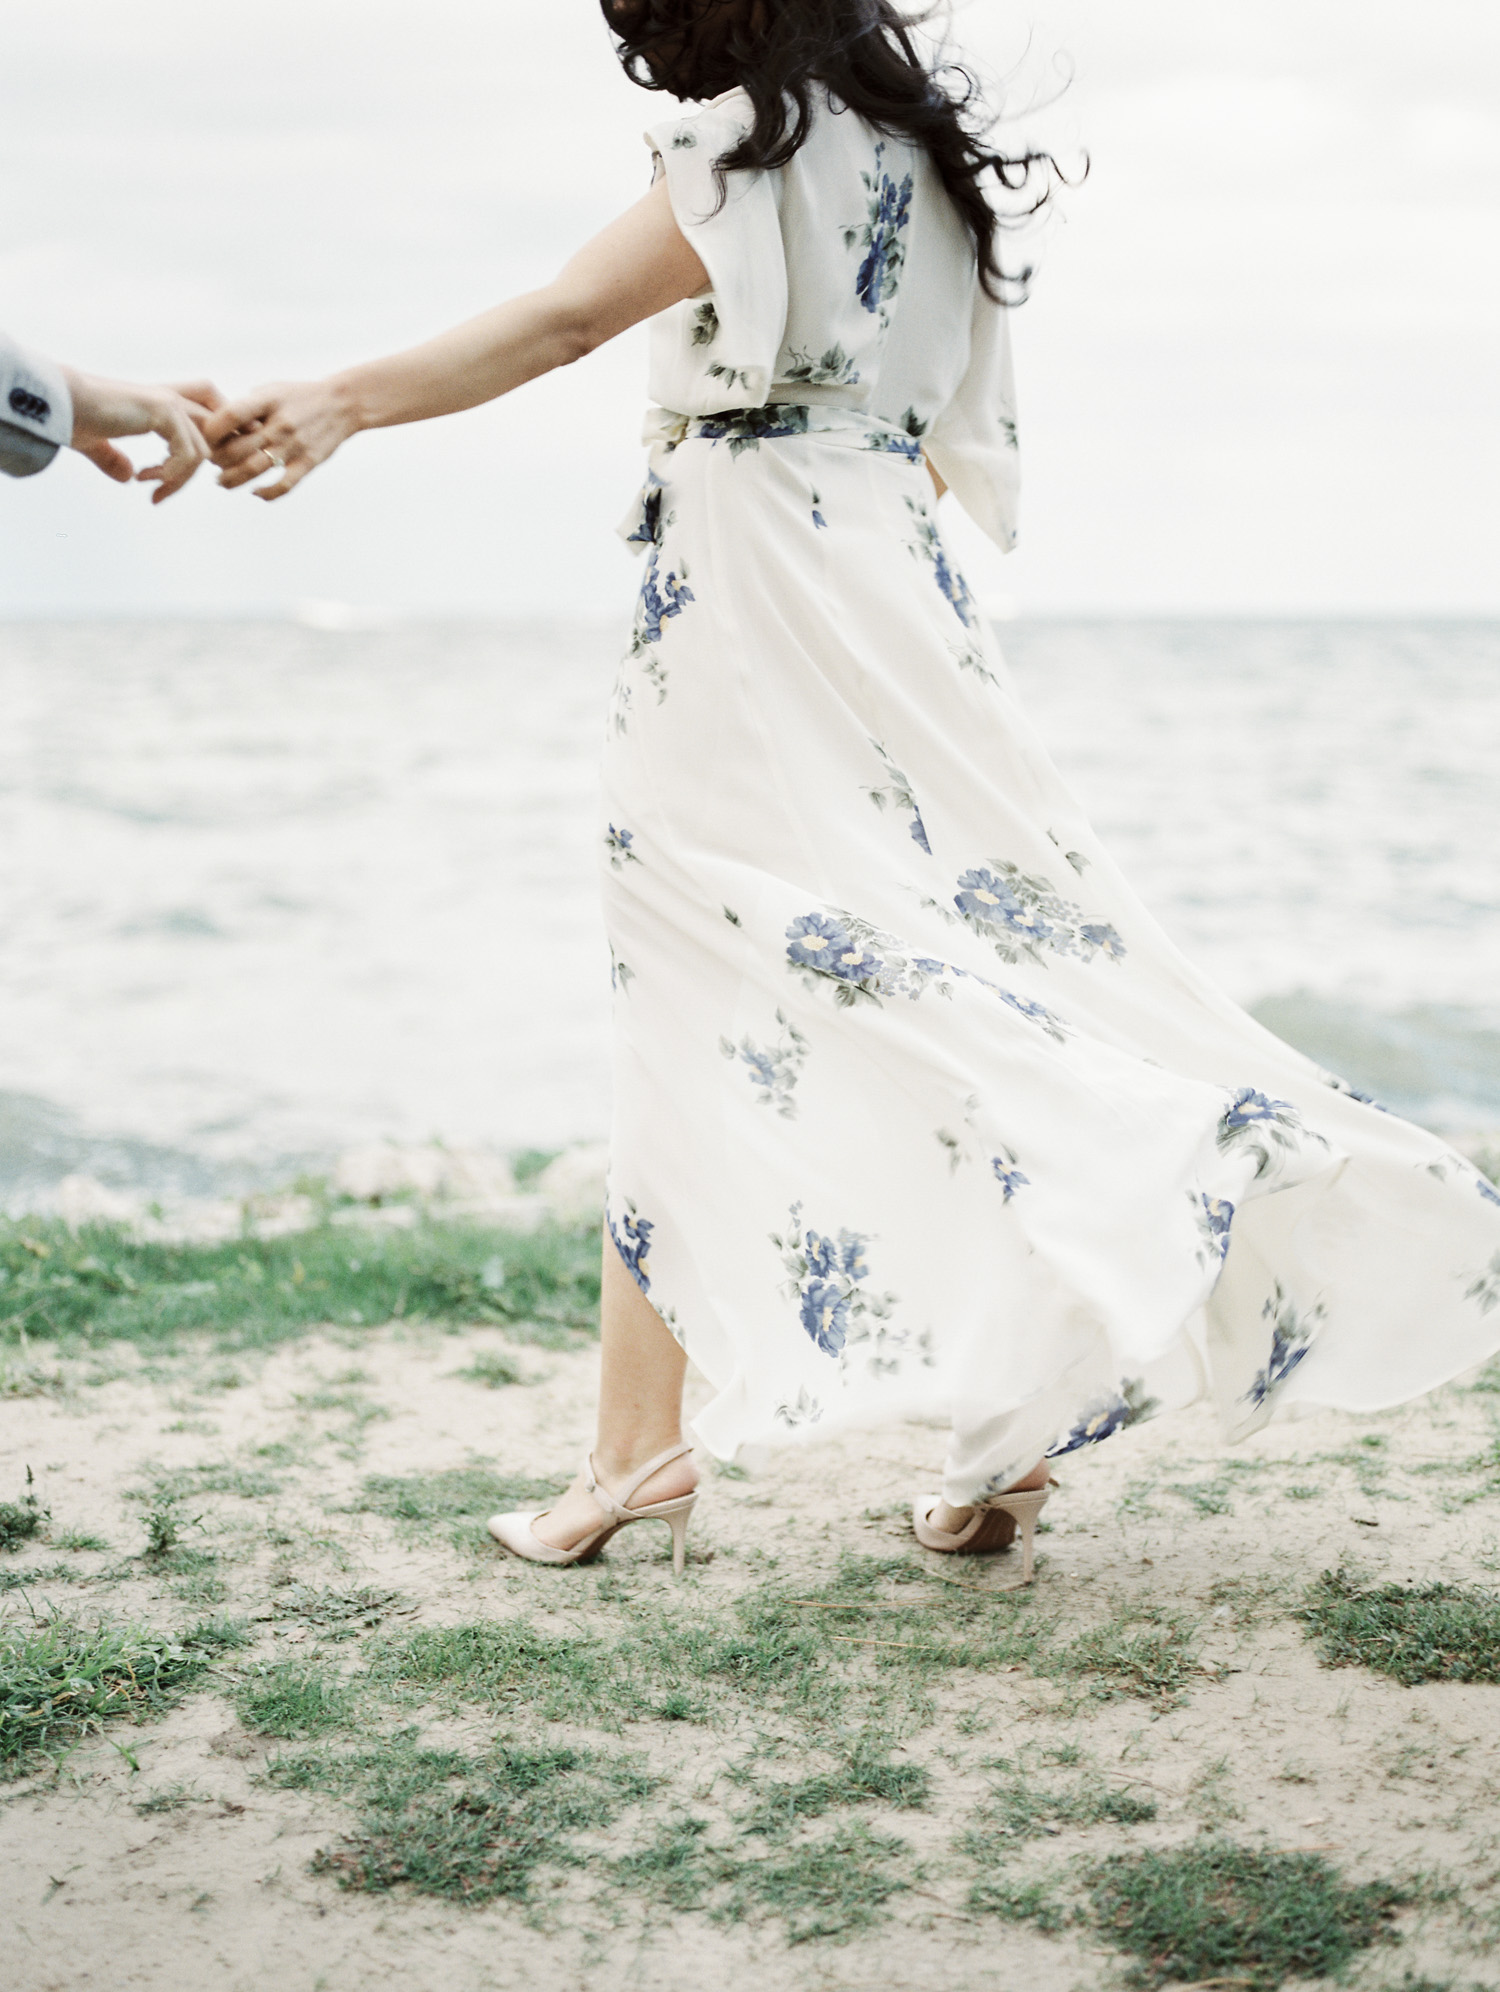 A woman's stylish engagement session outfit, a white floral print maxi dress, blows in the wind by the lake during a film engagement photo shoot